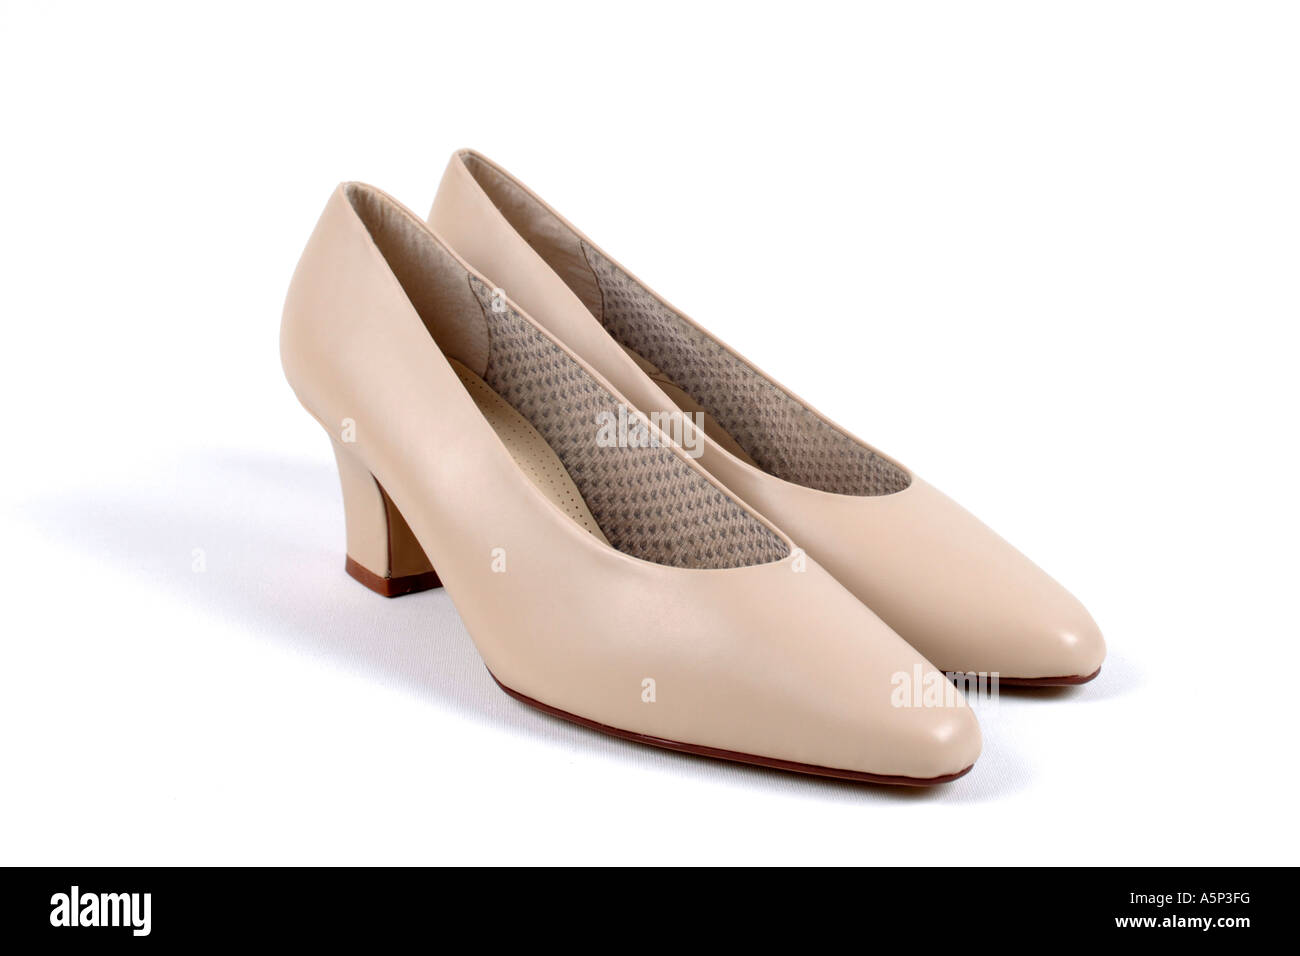 Womens Pale pink Leather Shoes. - Stock Image